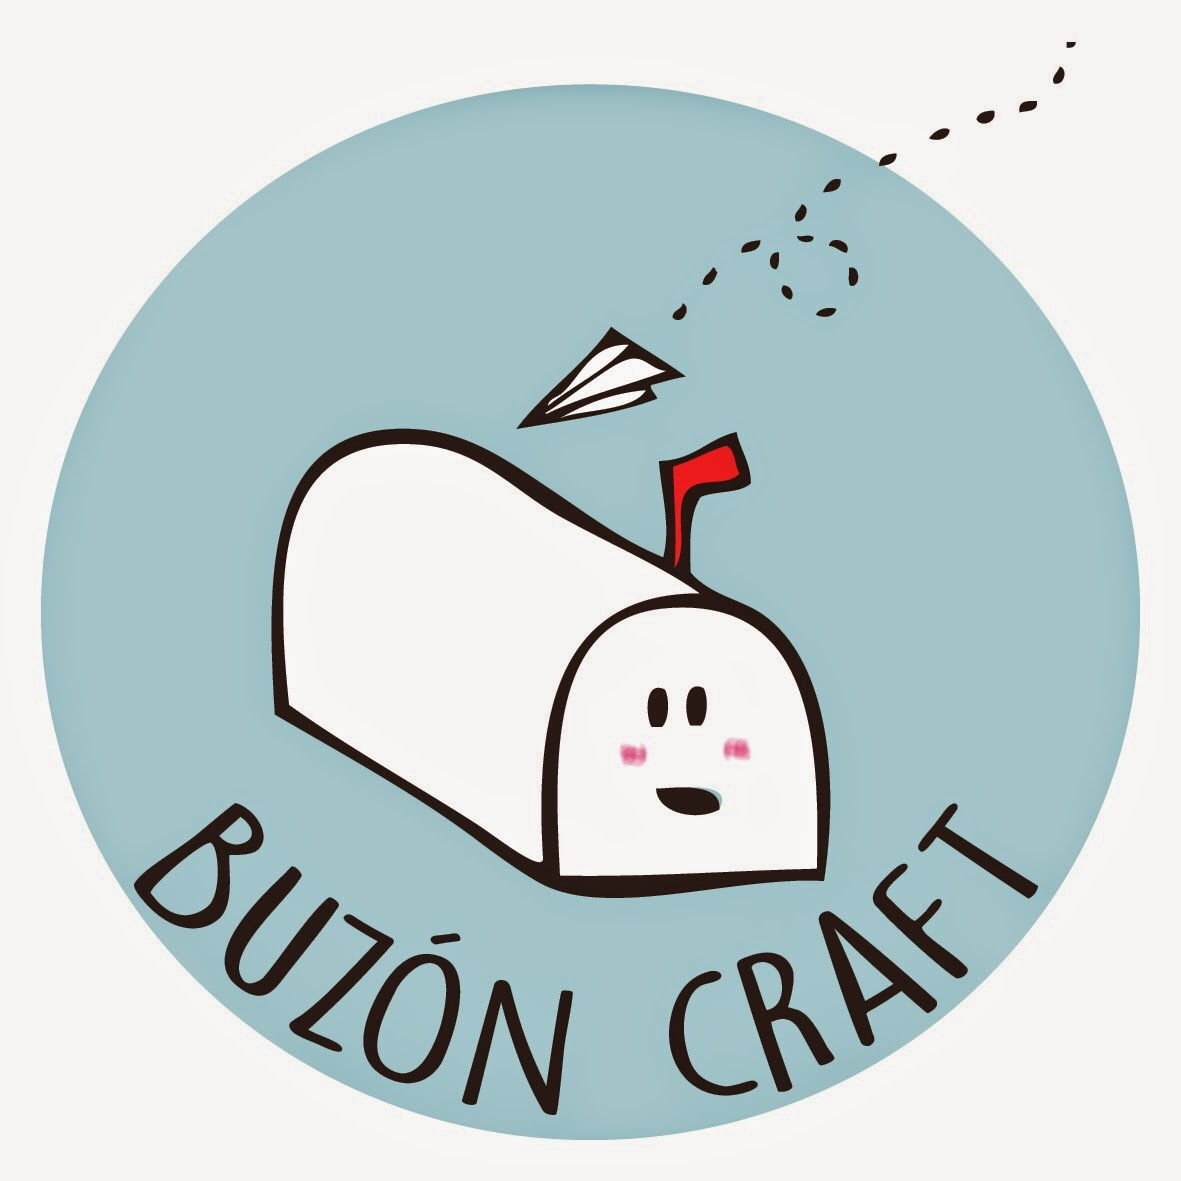 Las Crafty Girls y su Buzón Craft